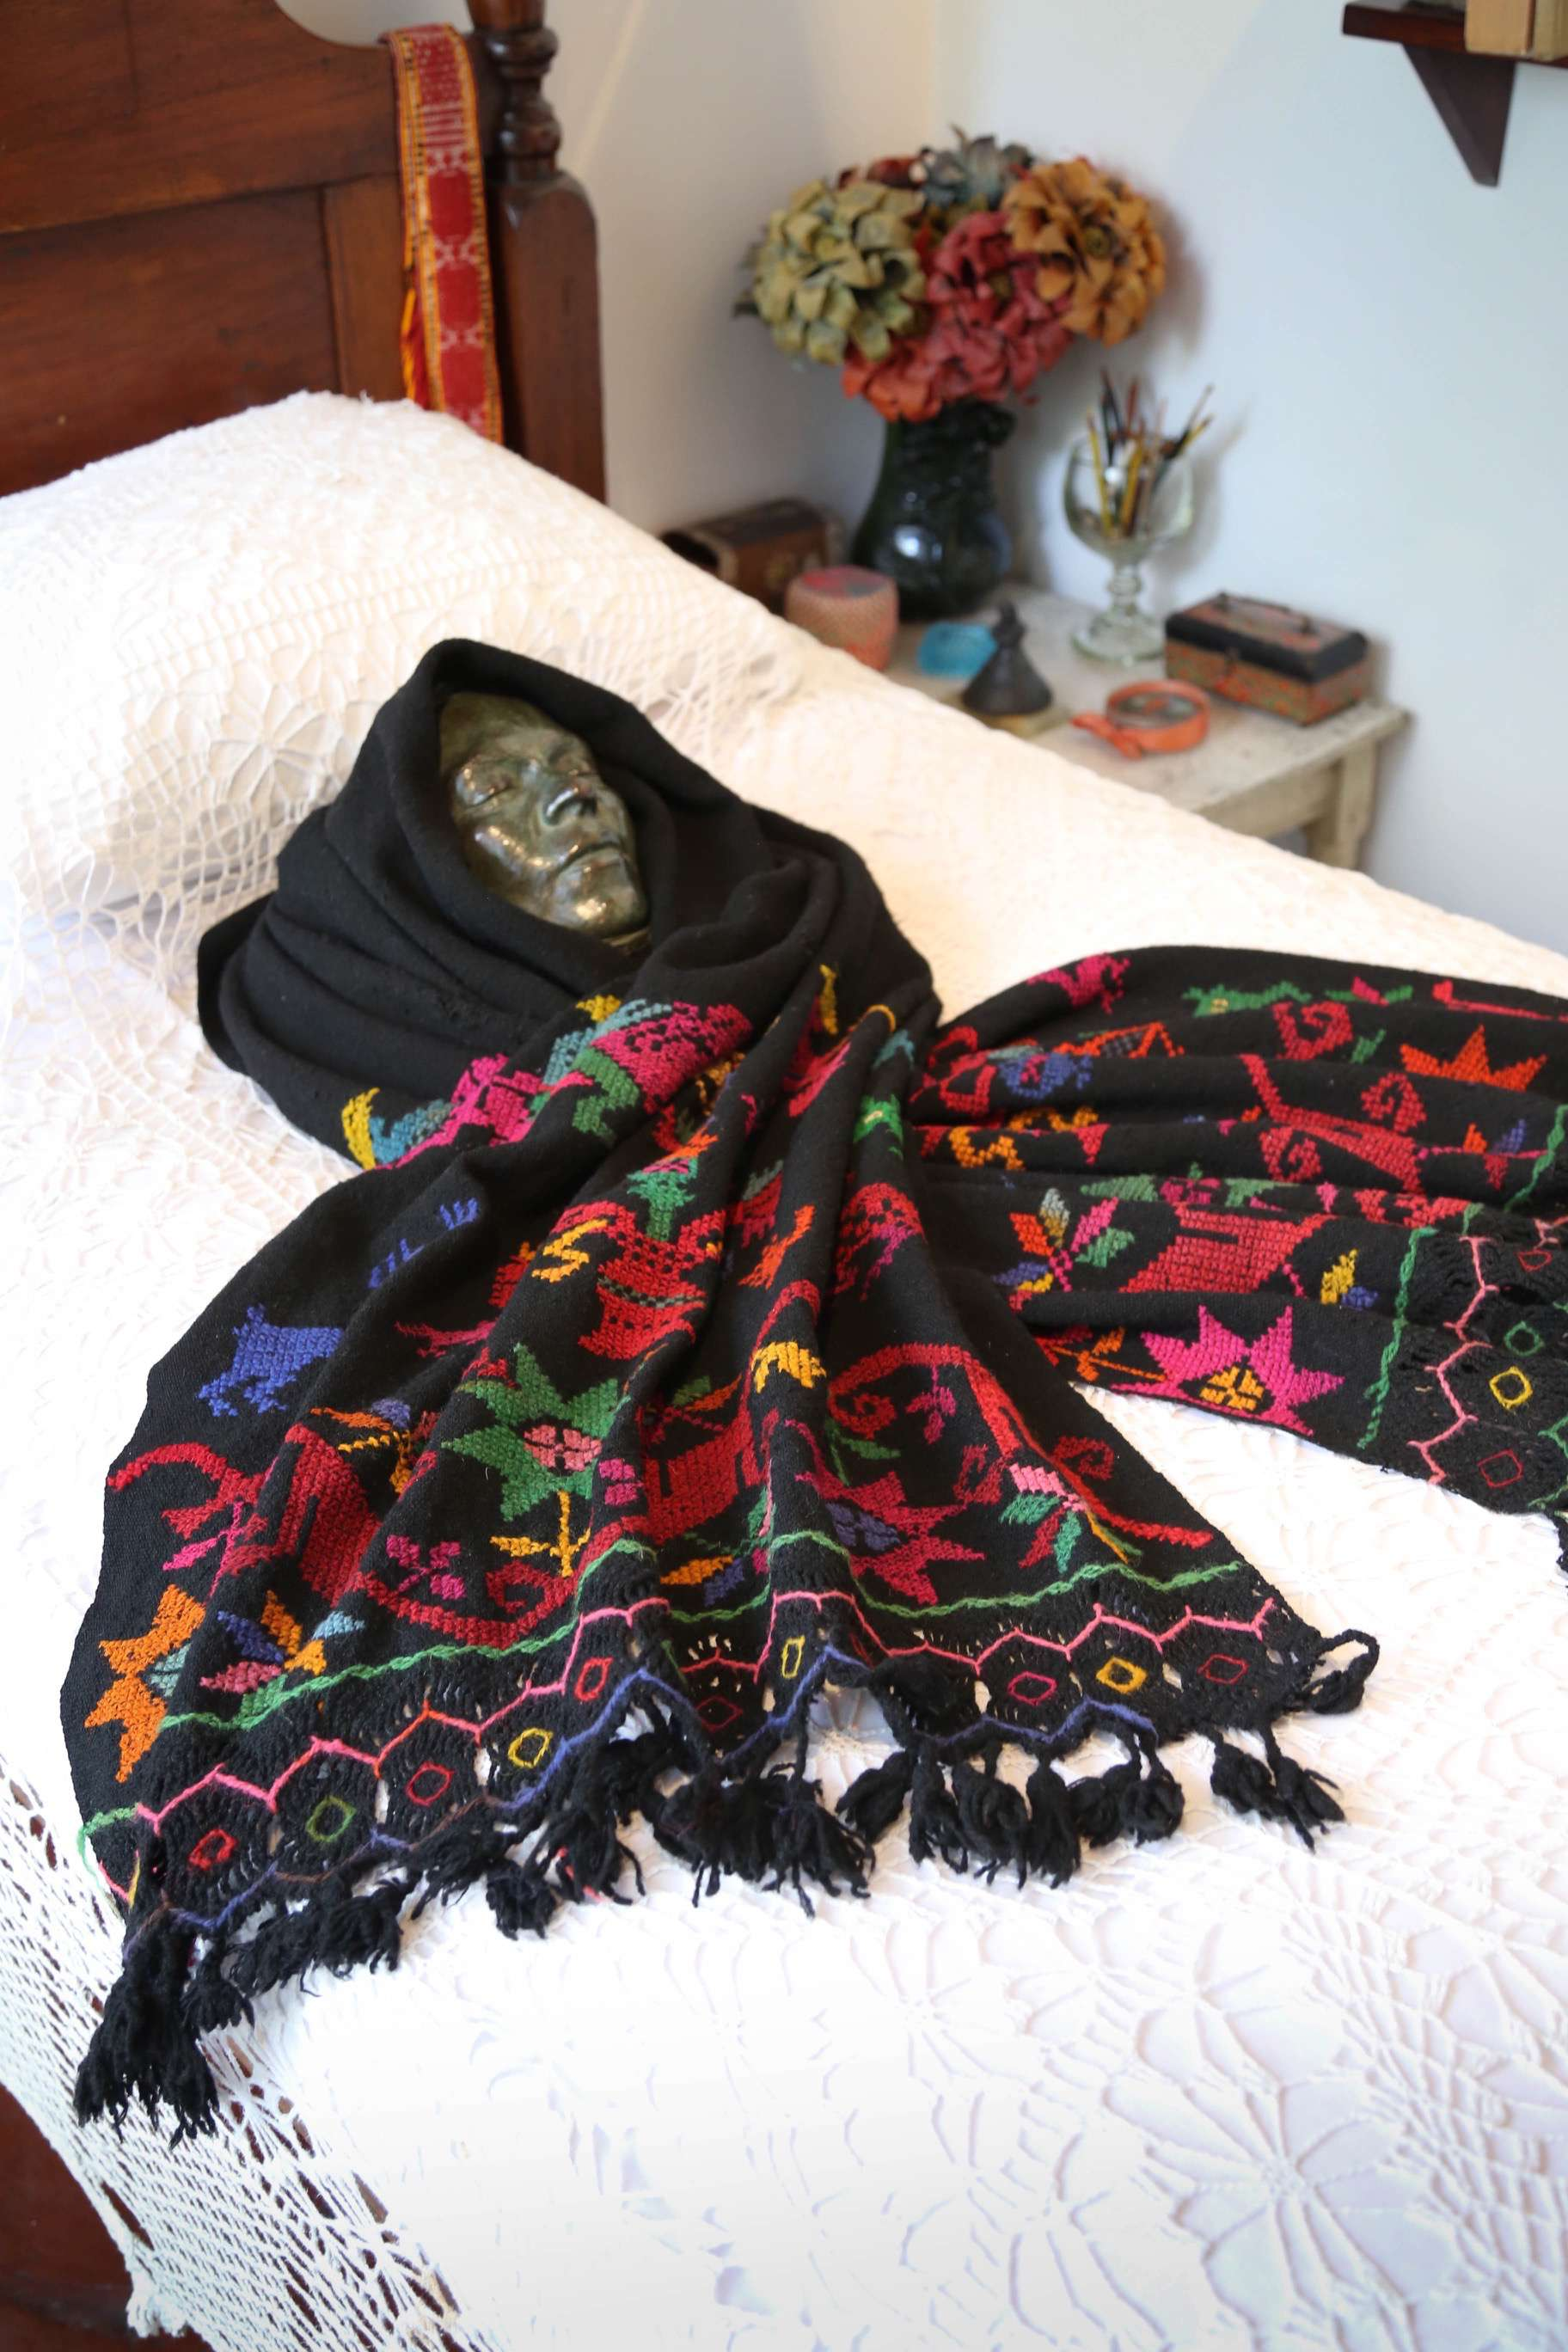 Frida Kahlo painted while lying in this bed and her mother had a mirror installed on the ceiling so Frida could paint self-portraits. Her death mask is draped in a shawl.